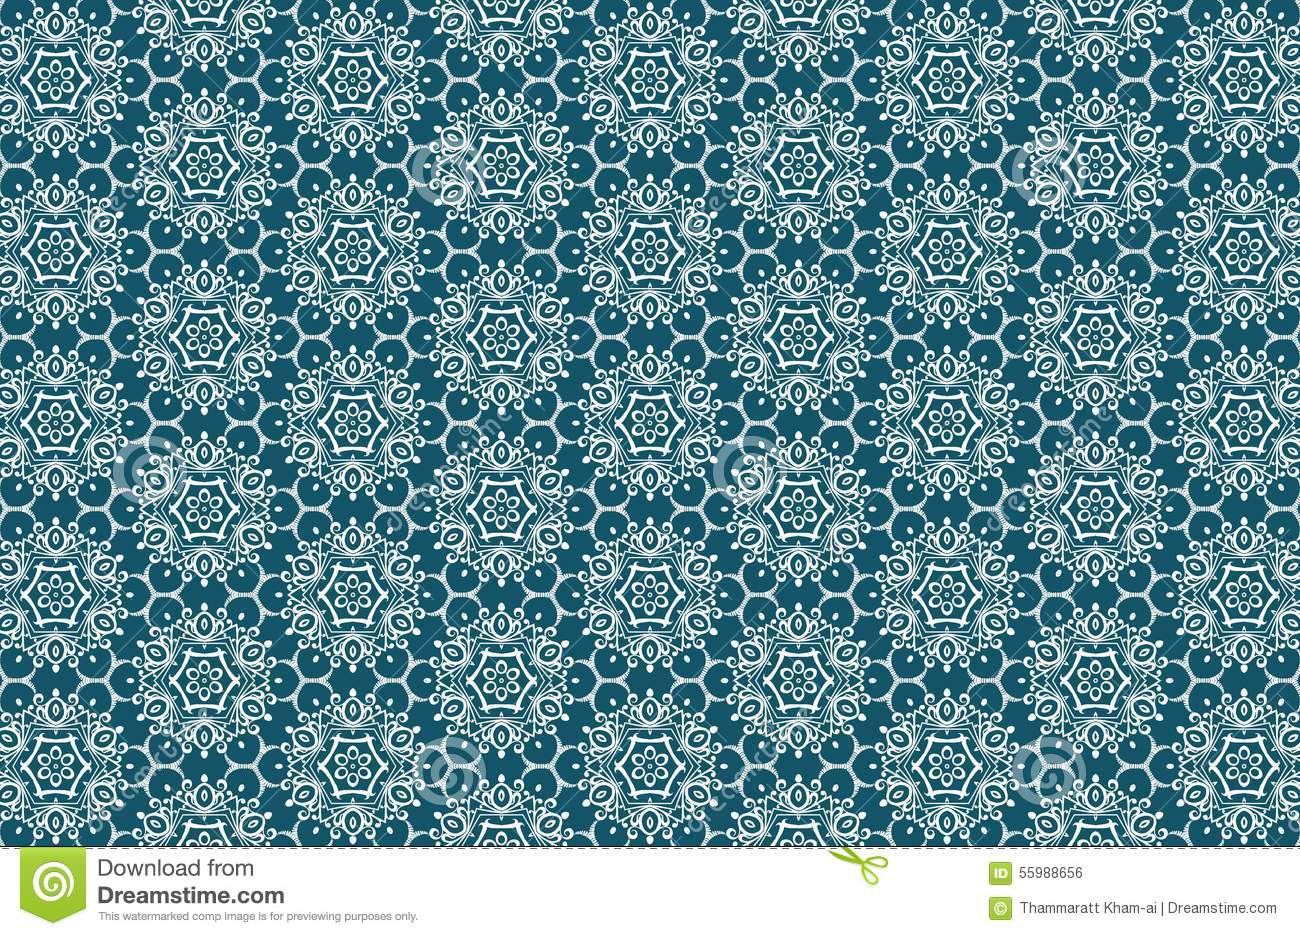 abstract vintage patterns background wallpaper